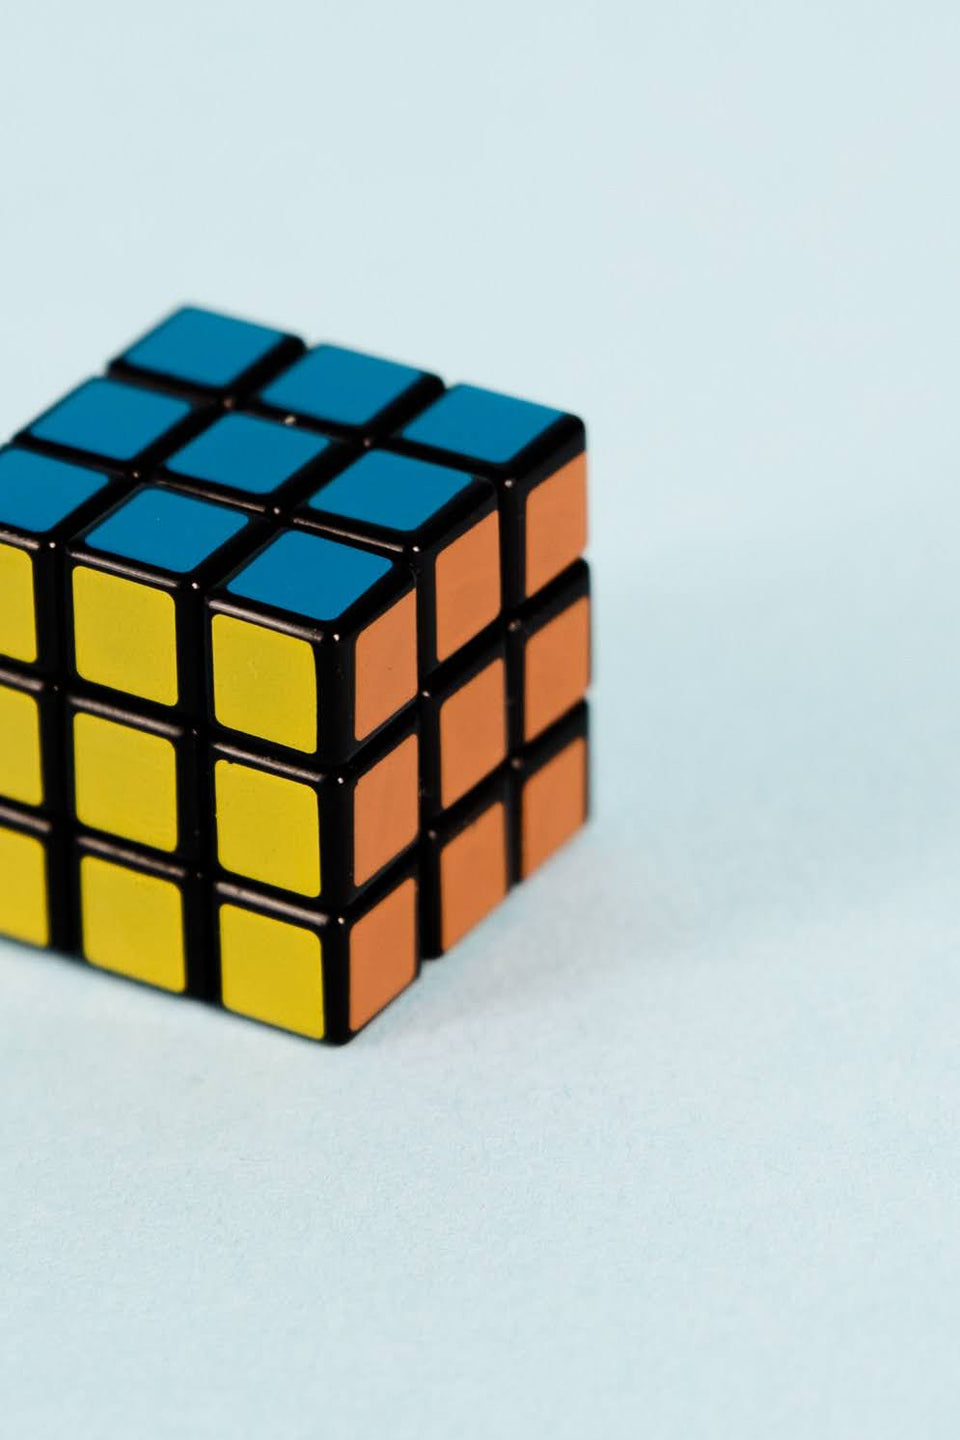 World's Smallest: Rubik's Cube 3x3